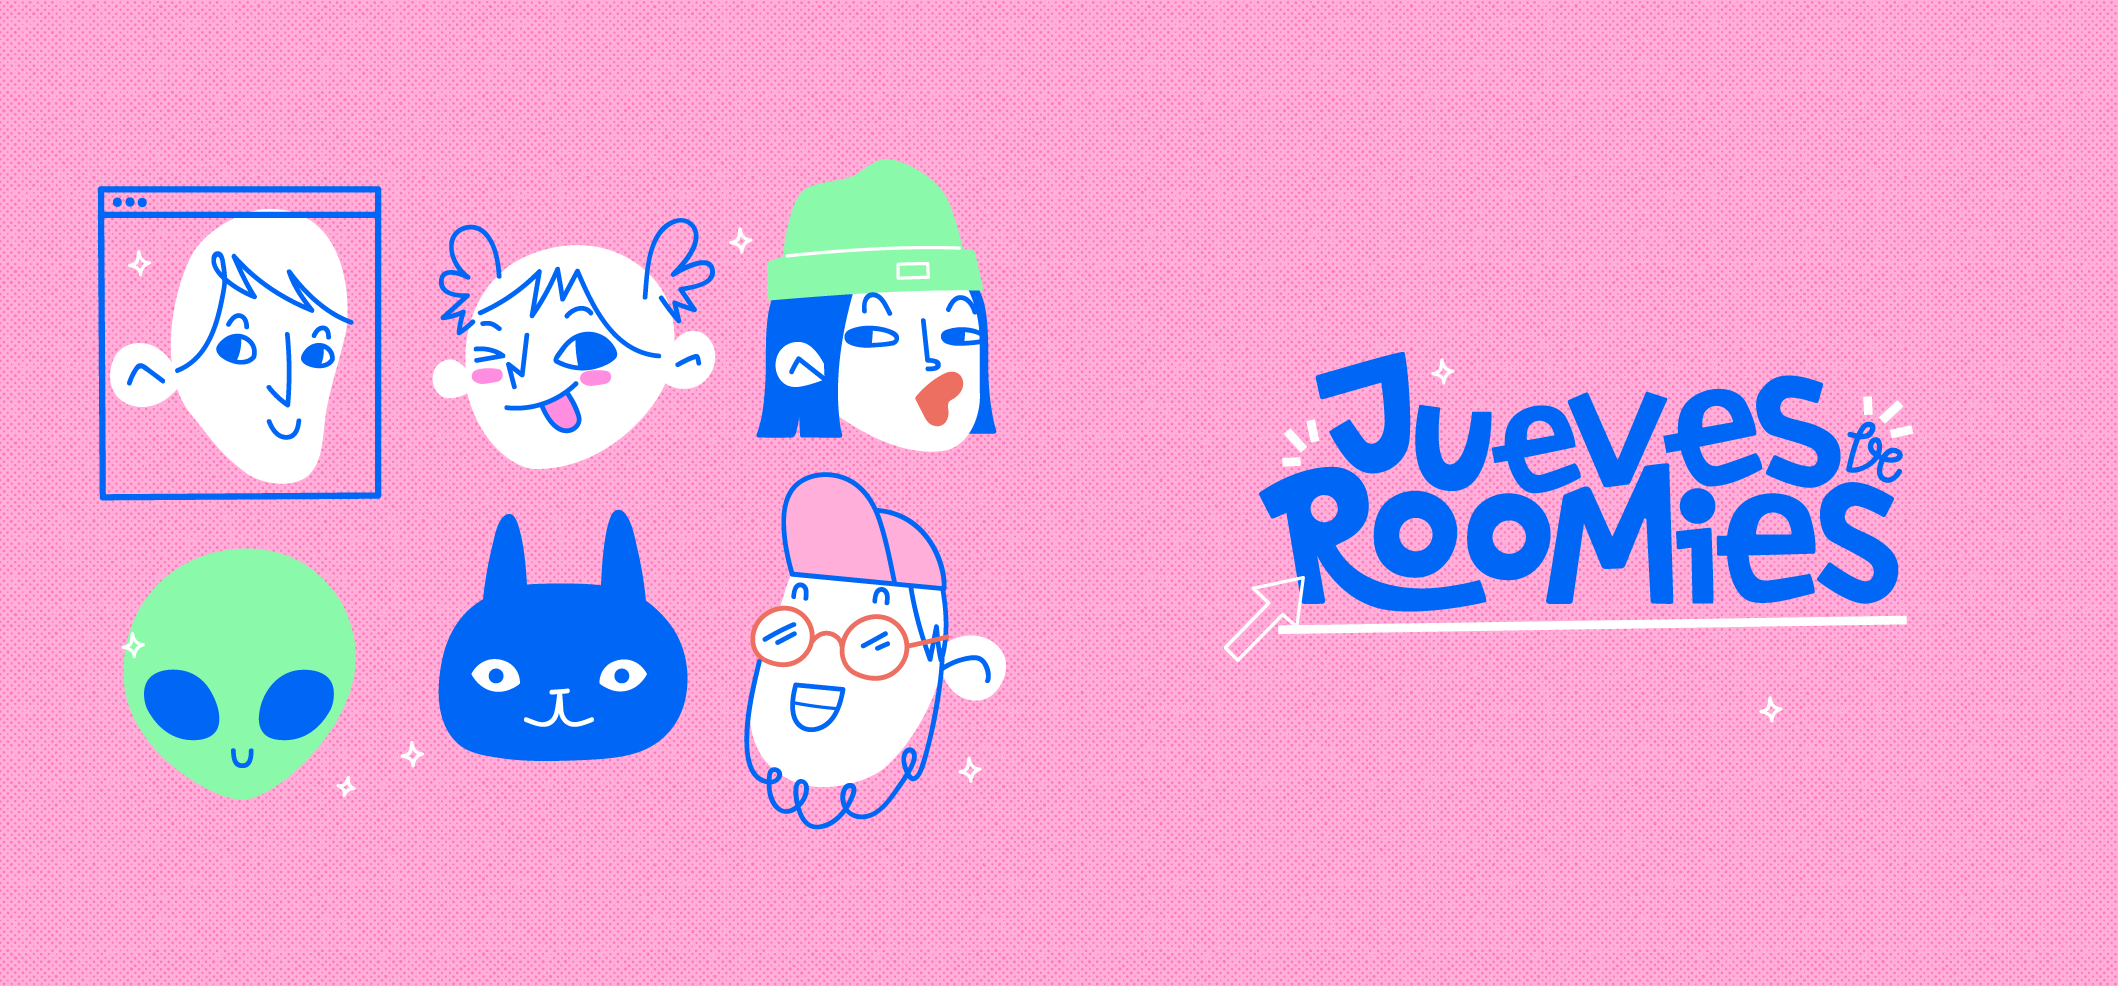 Characters logo character texture friends roomie design girl roomies illustration